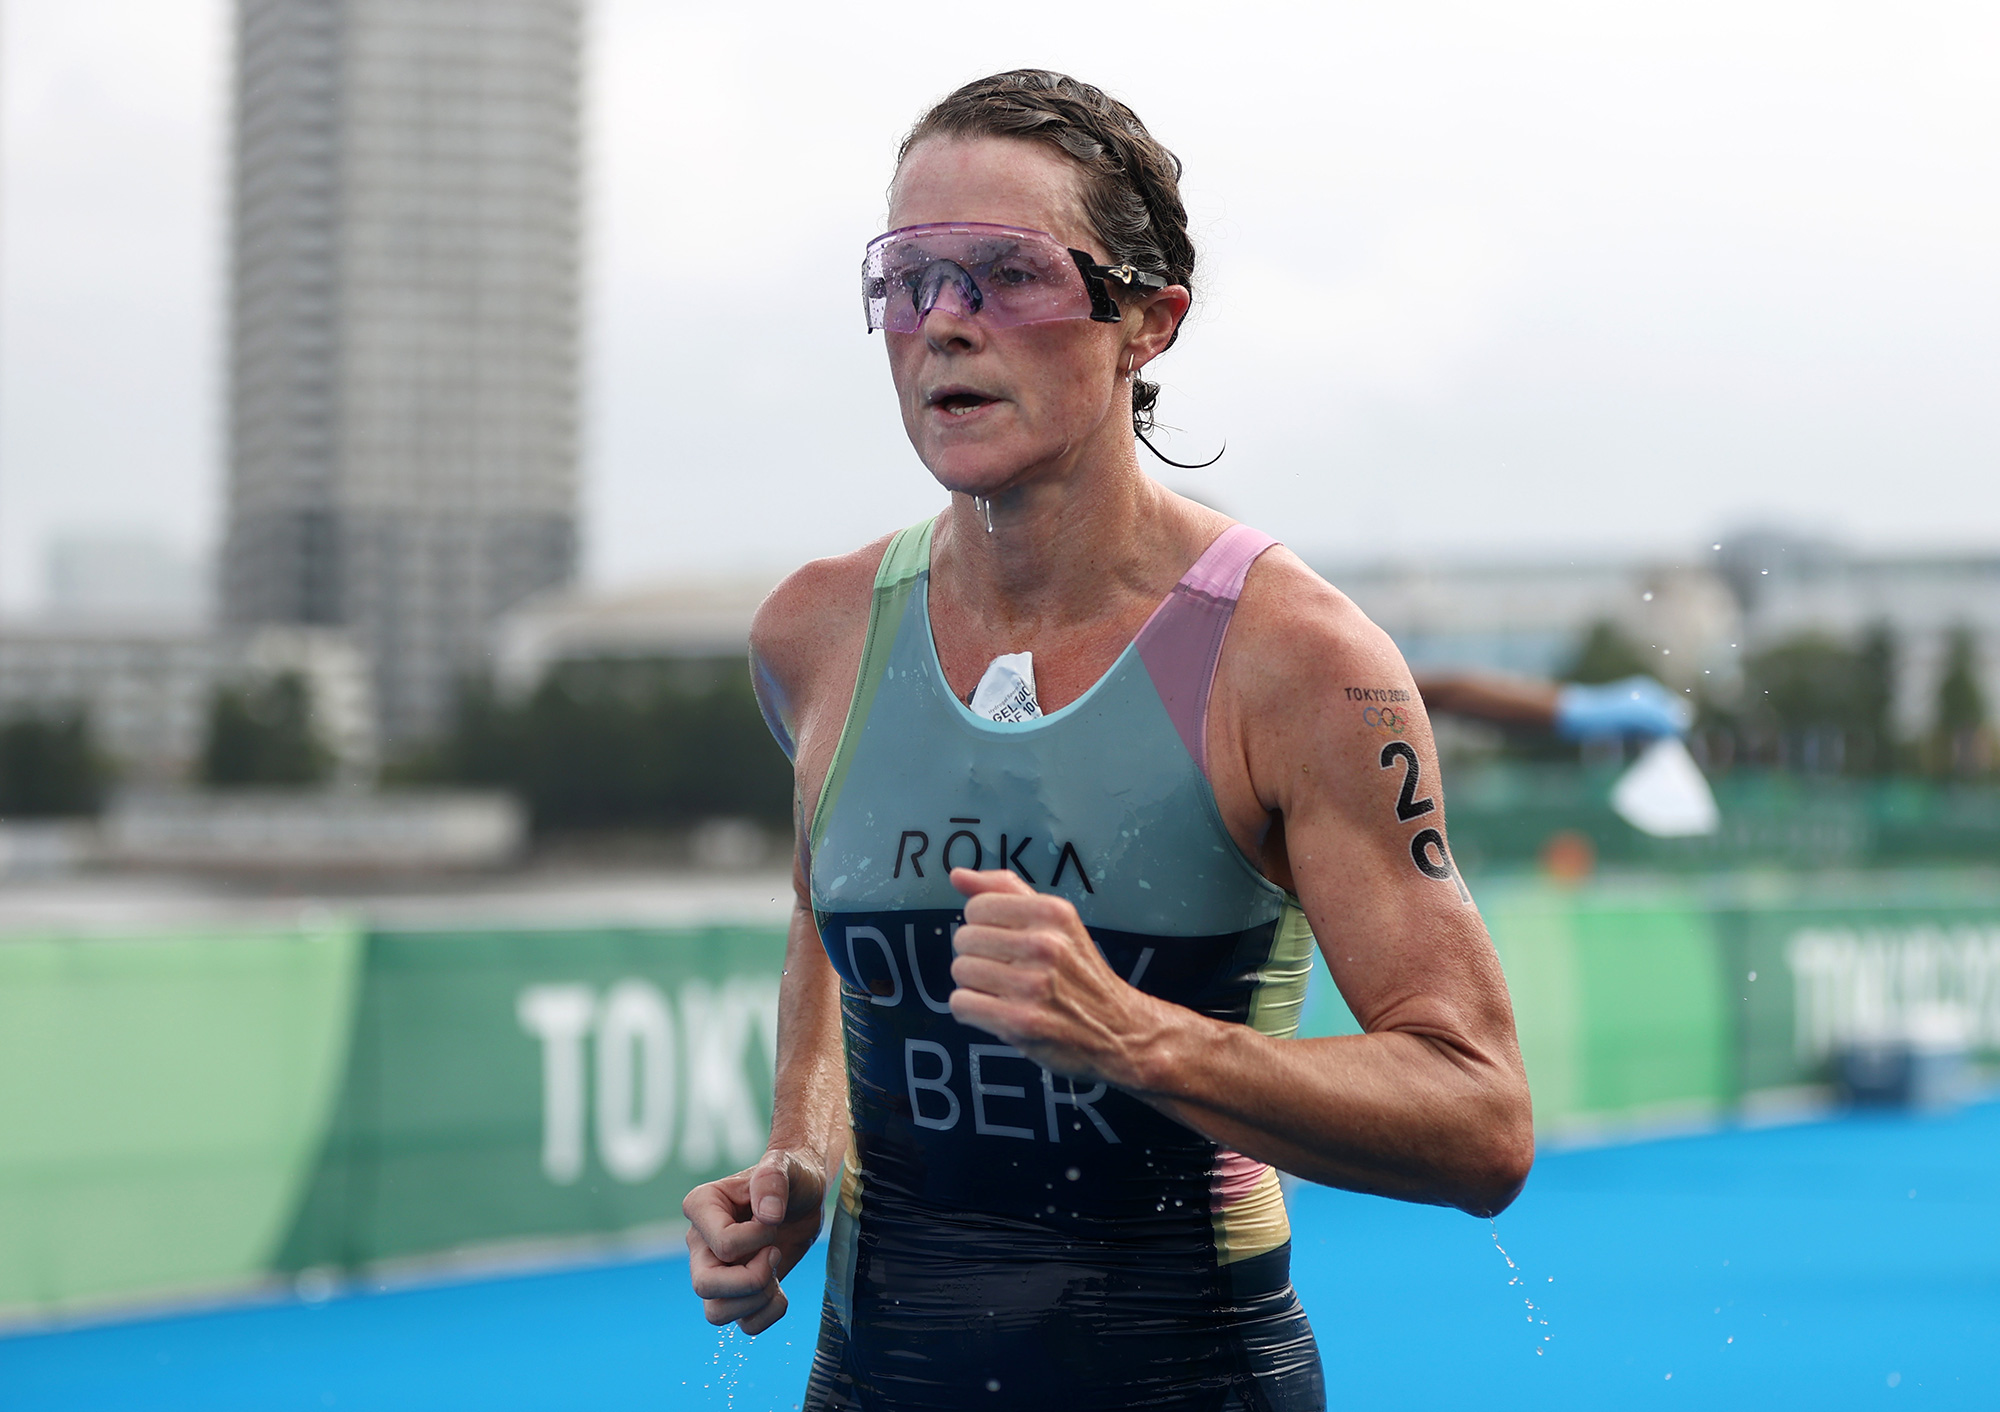 Bermuda's Flora Duffy competes during the Women's Individual Triathlon on July 27.